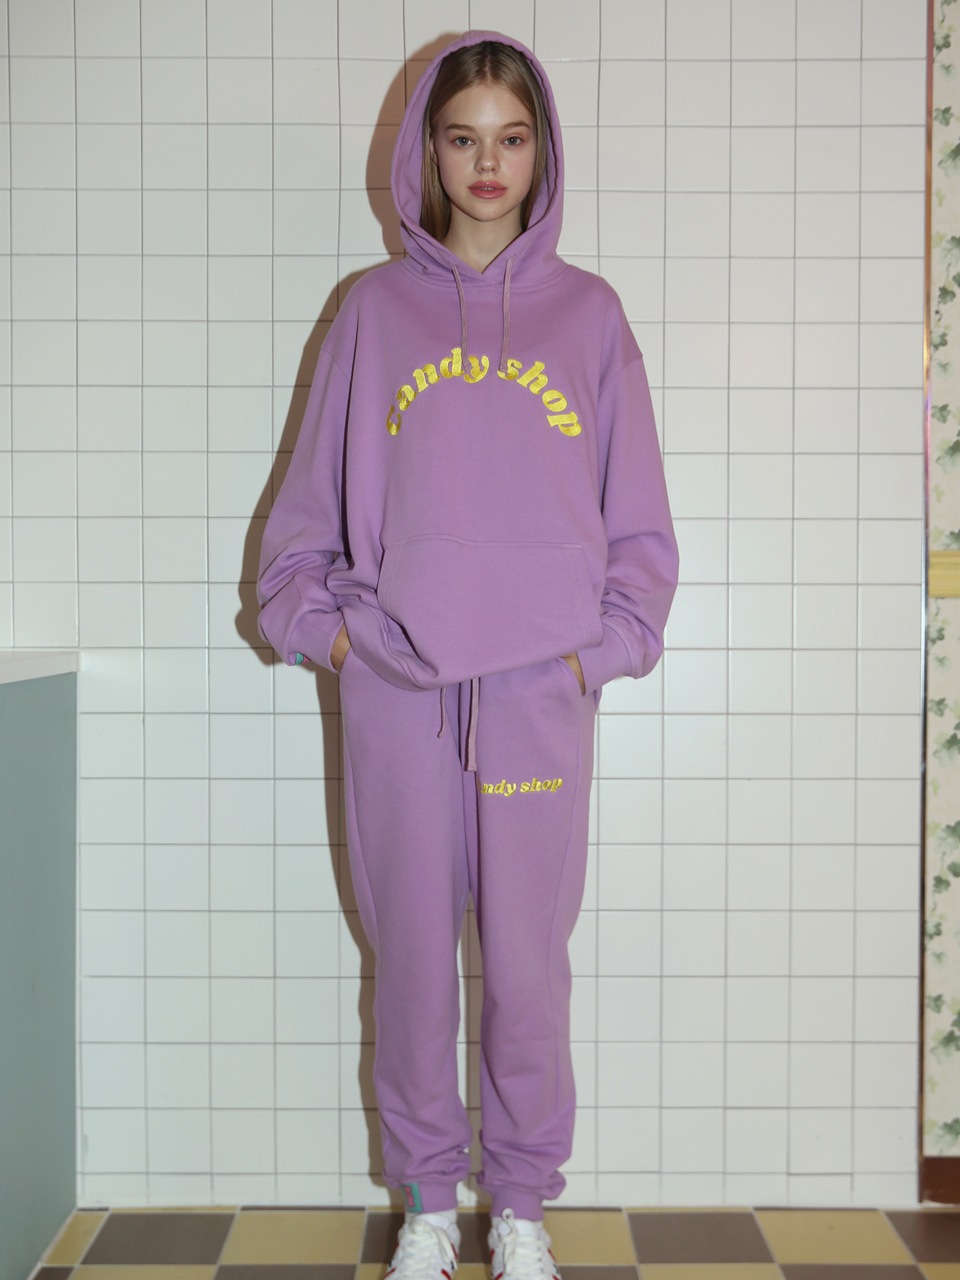 [10%SALE] Candy shop logo sweatpants - PURPLE